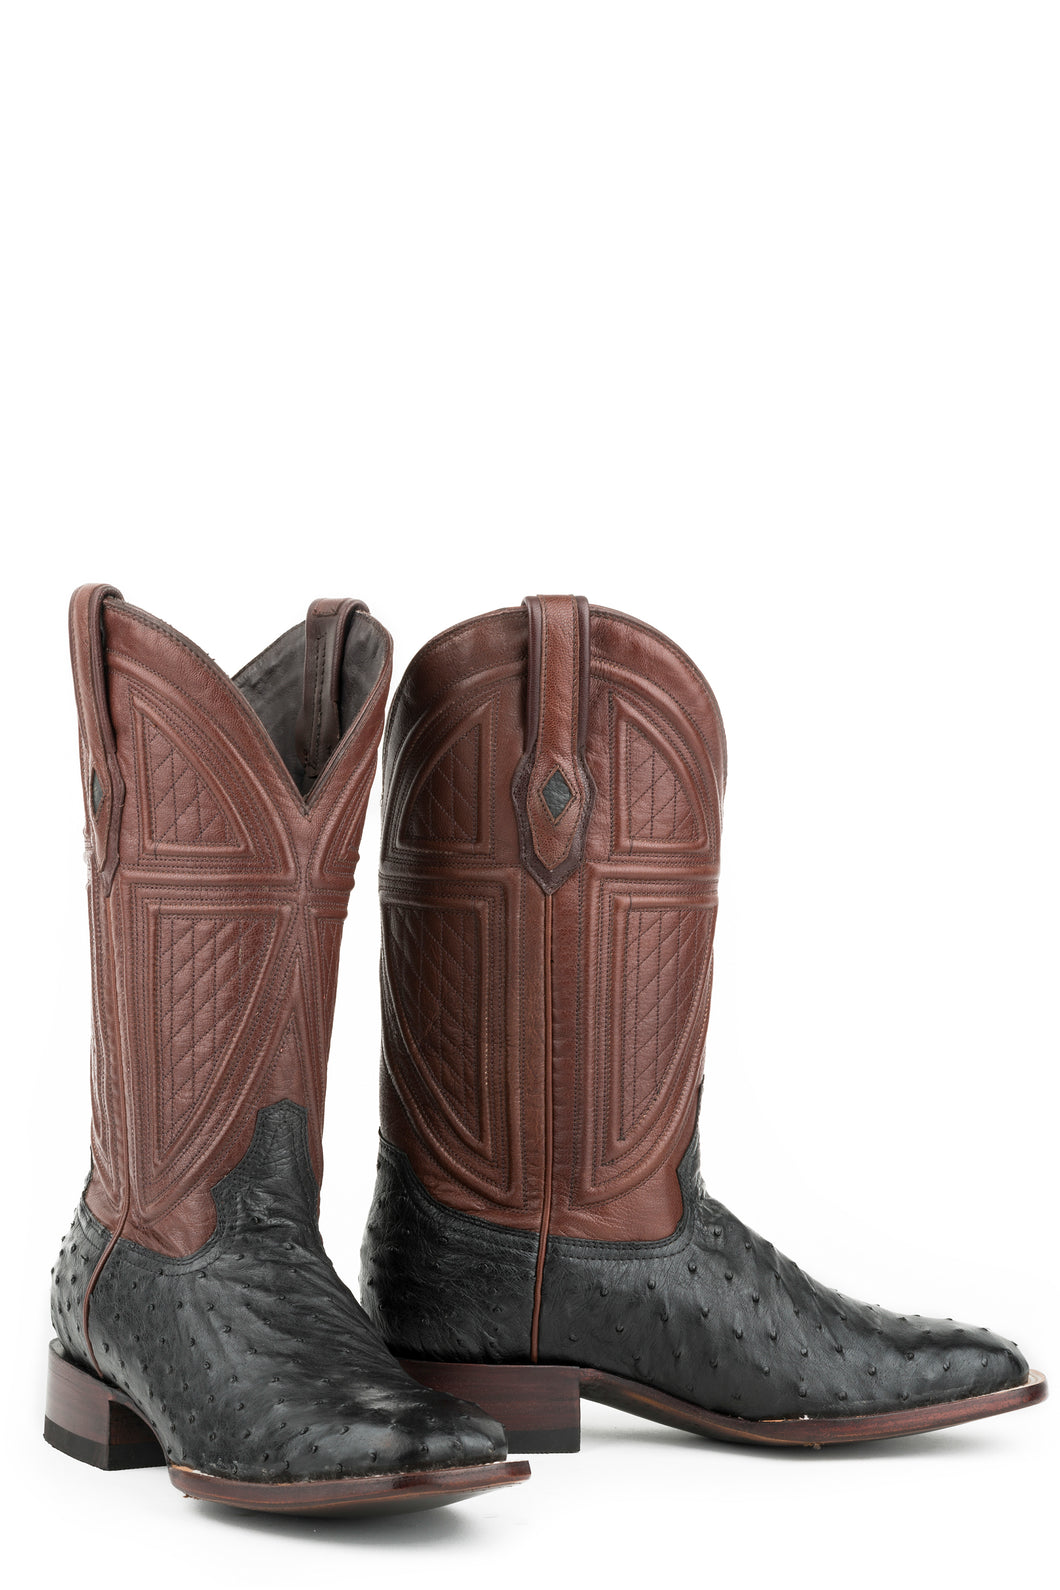 Dillon Boot Mens Boot Black Ostrich Vamp Brown 13